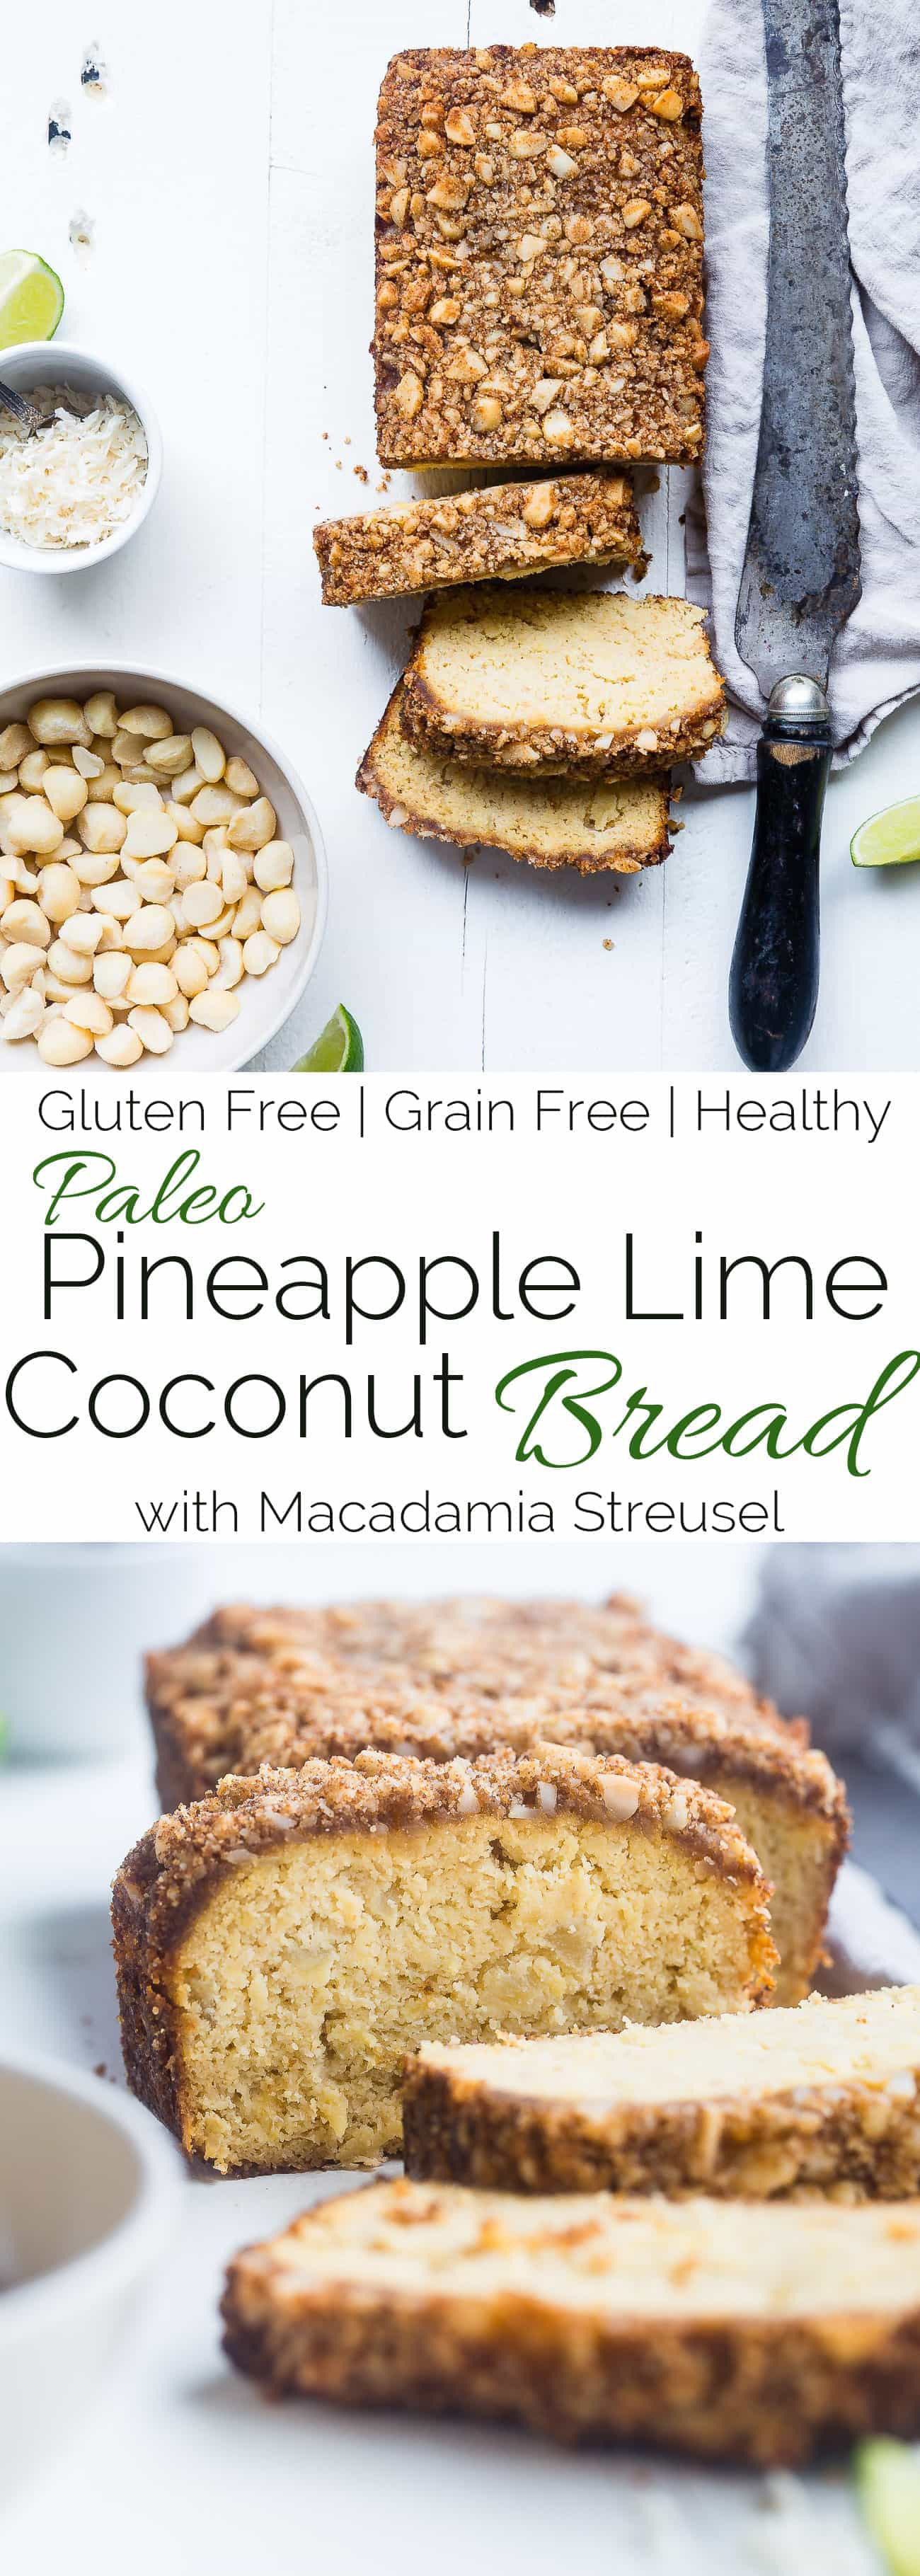 Paleo Pineapple Coconut Lime Bread - This healthy, paleo pineapple bread is a gluten, grain and dairy free summer treat! Complete with macadamia streusel, this will be a crowd pleaser! | Foodfaithfitness.com | @FoodFaithFit